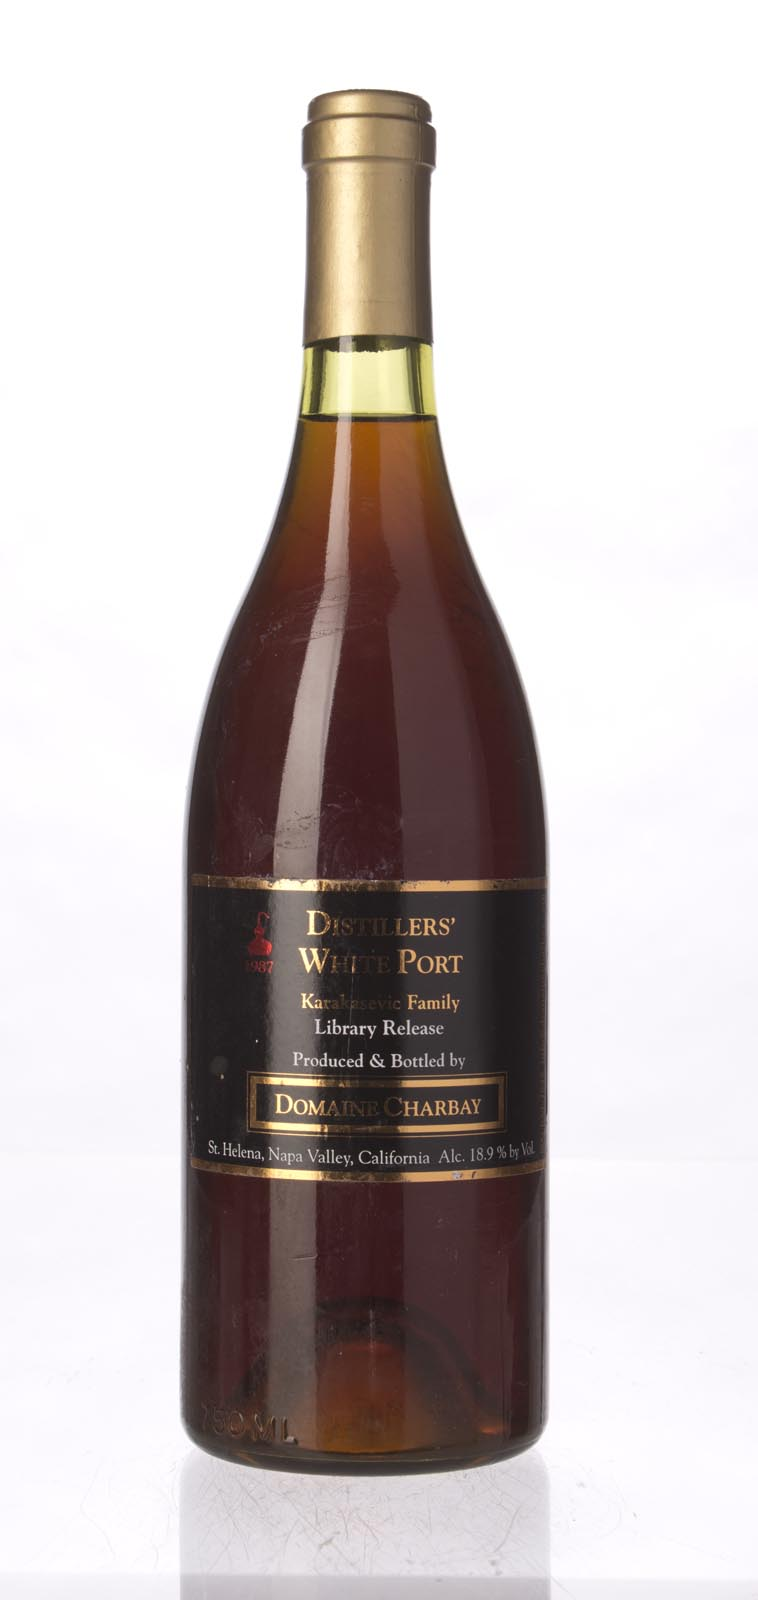 Domaine Charbay Distiller`s White Port Karakasevtch Library Release 1987, 750mL () from The BPW - Merchants of rare and fine wines.